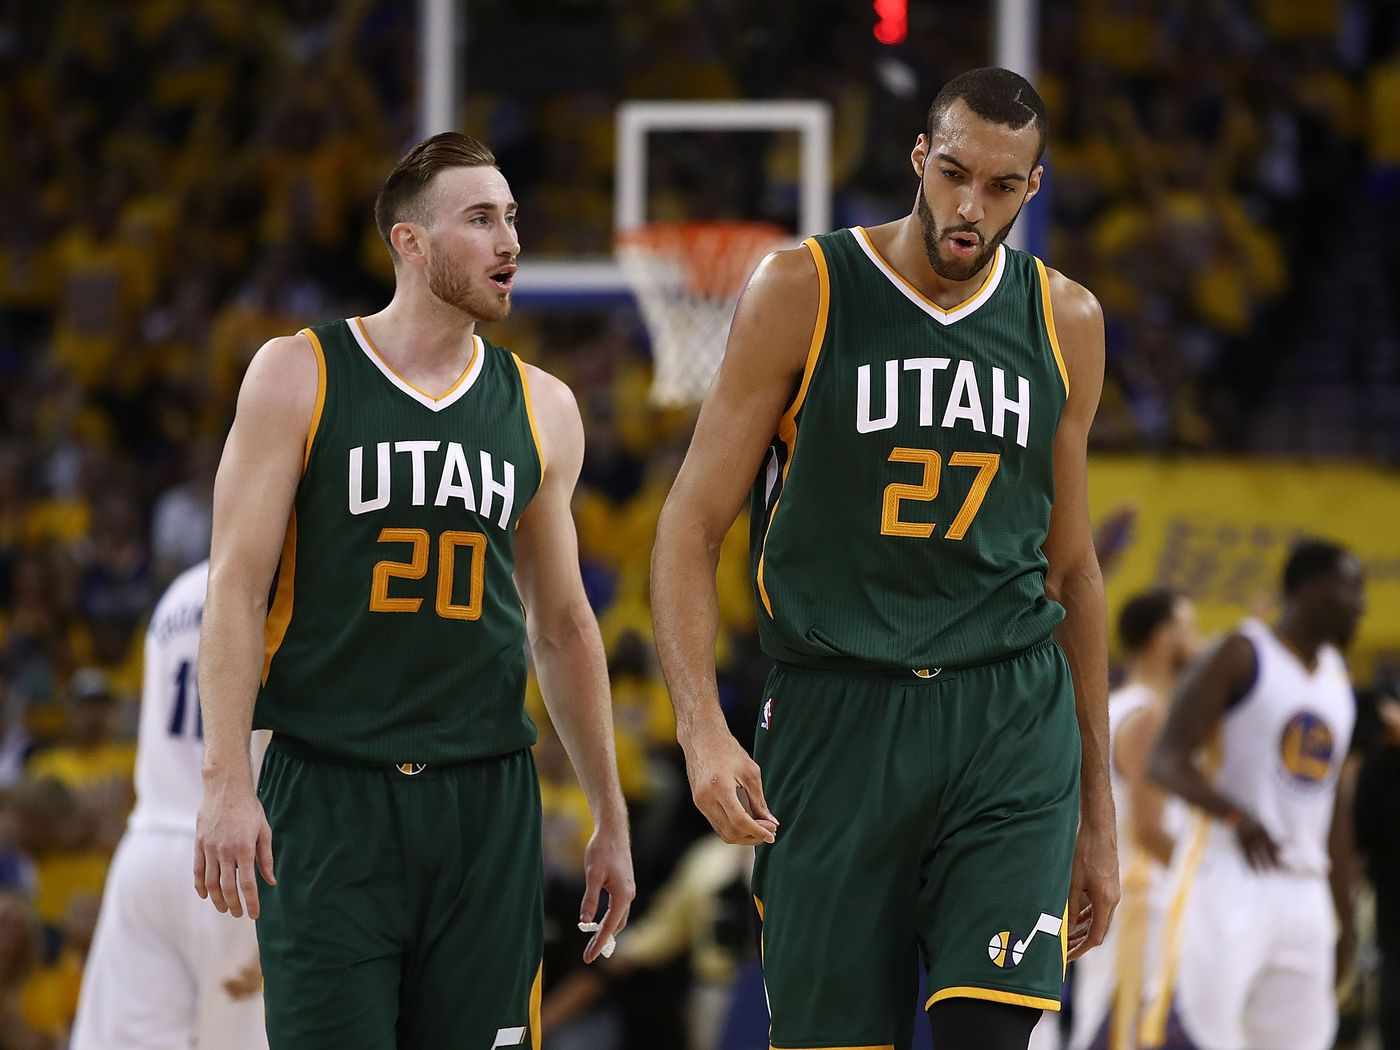 The Downbeat Rudy Gobert Is Over Gordon Hayward Slc Dunk